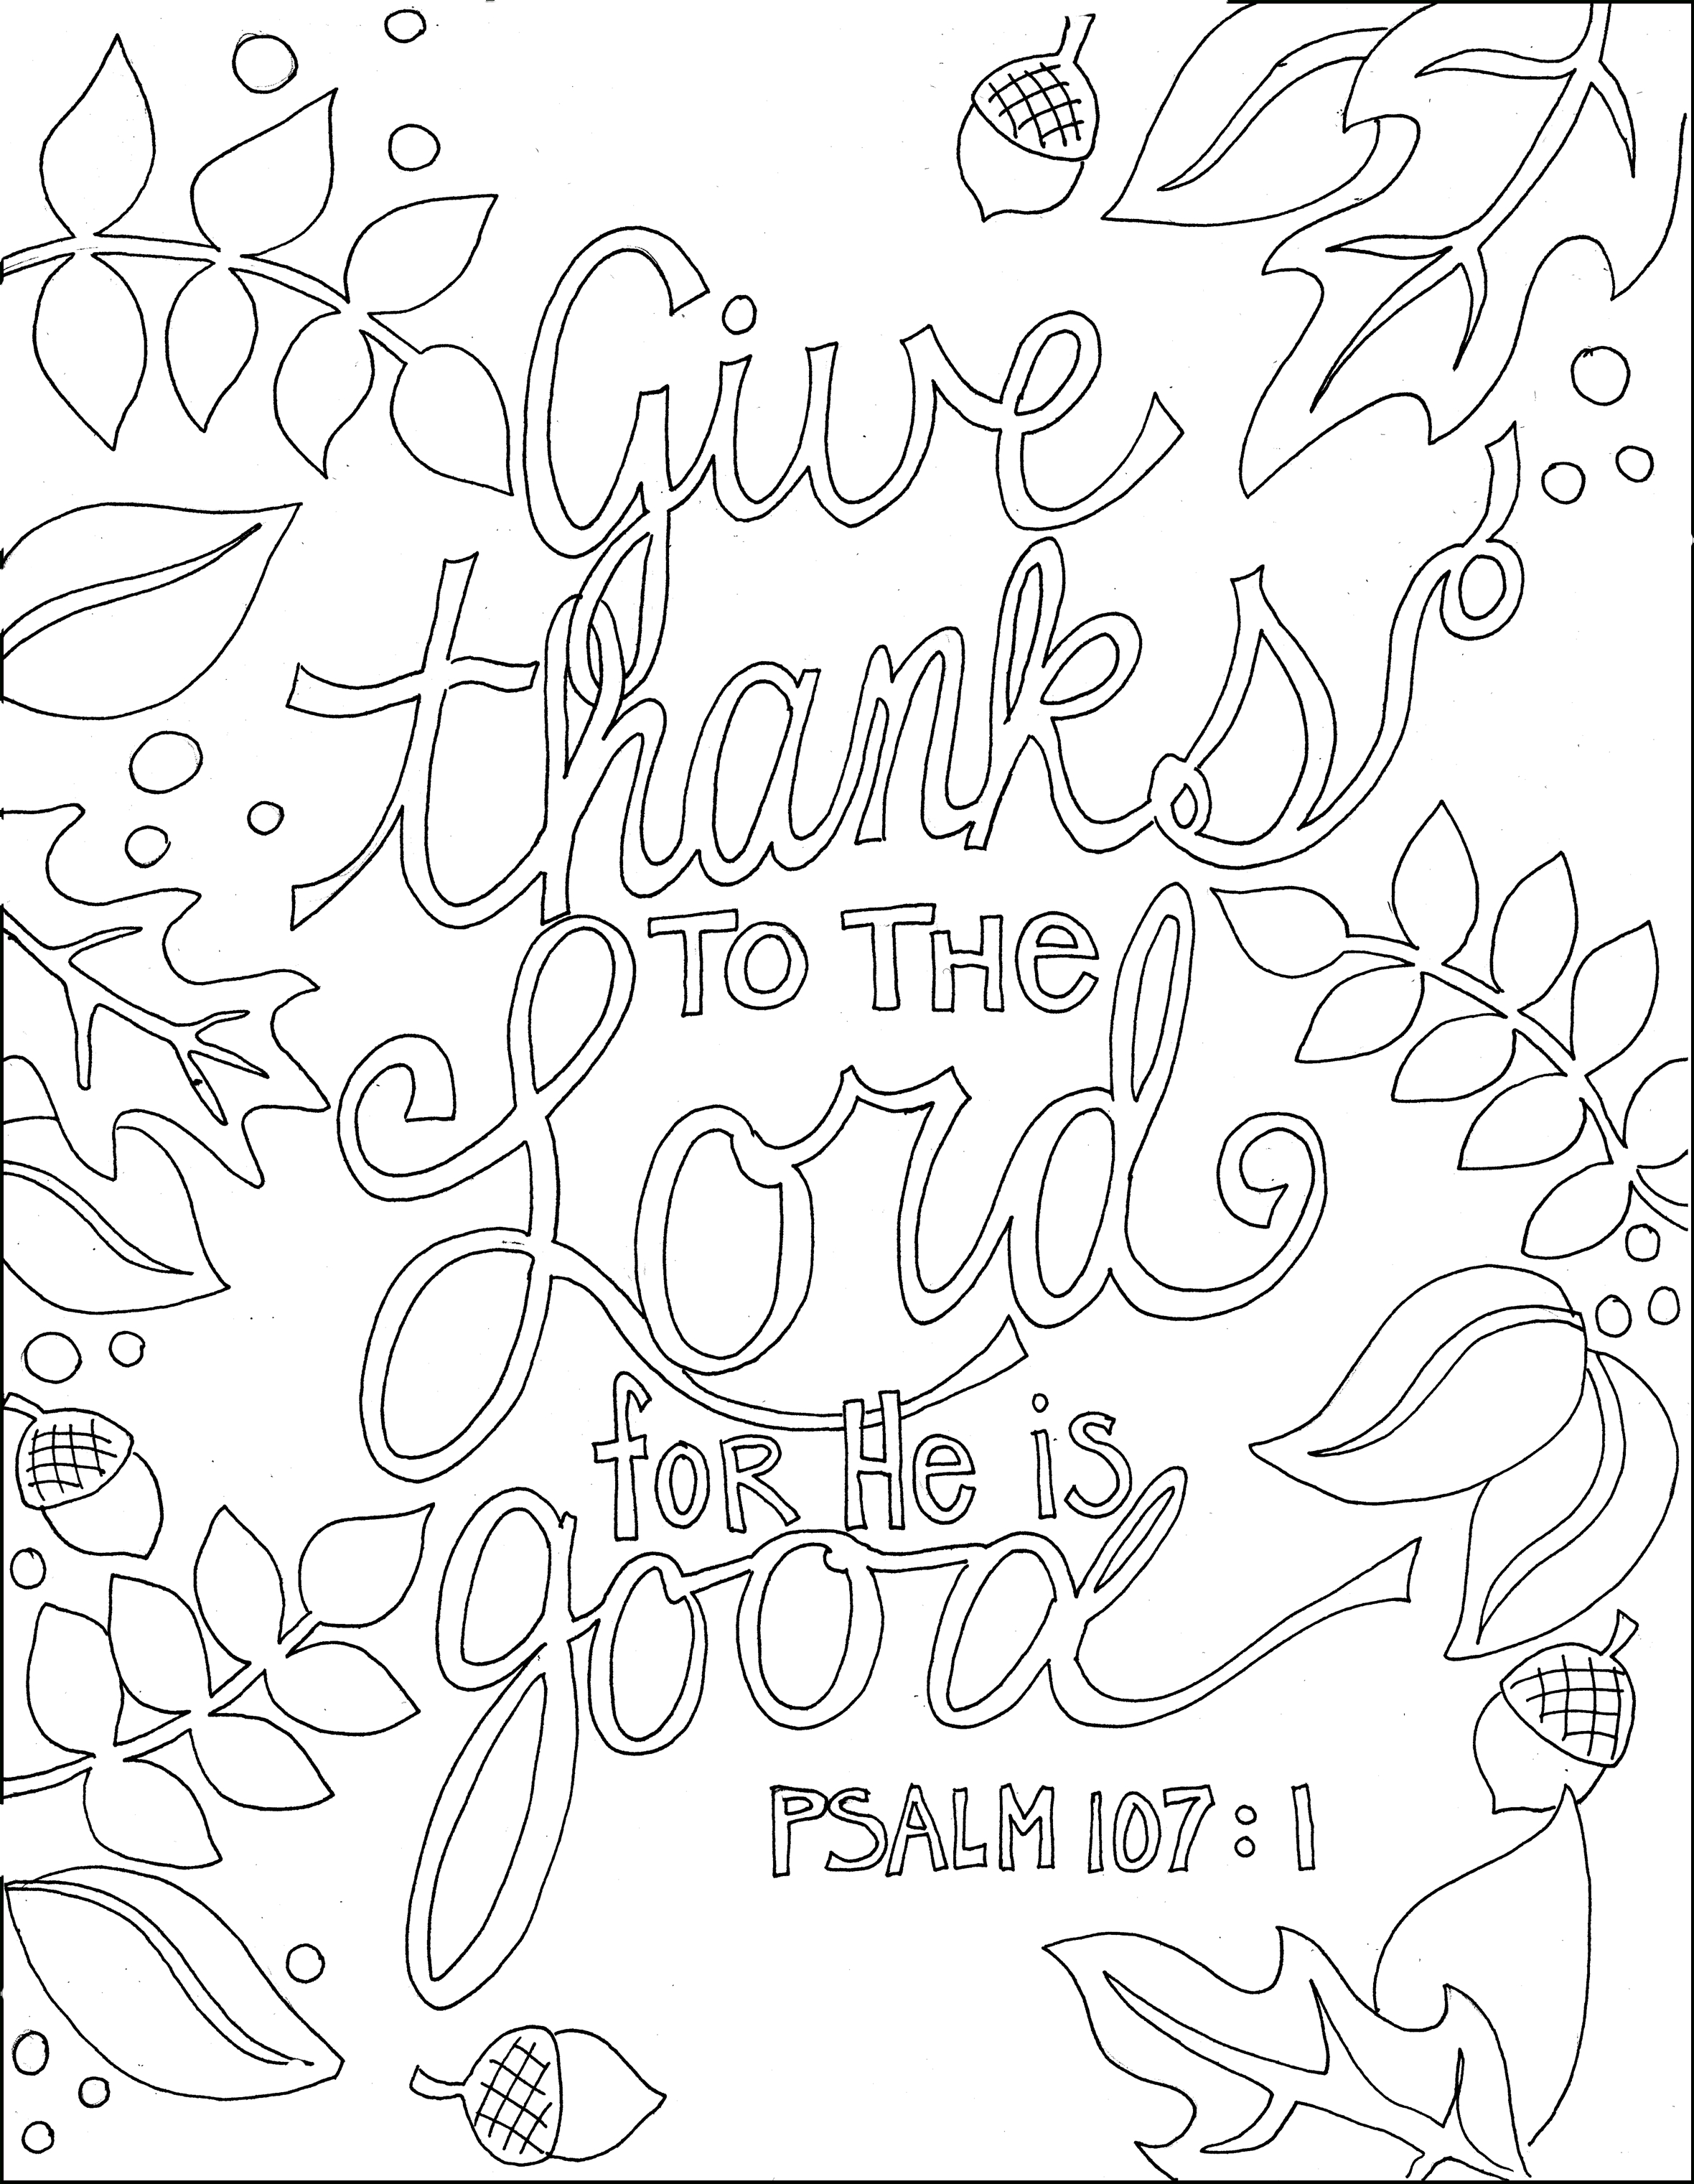 Ps 107.1 And Many Other Printable Bible Verse Coloring Pages | Adult - Free Printable Bible Coloring Pages With Scriptures